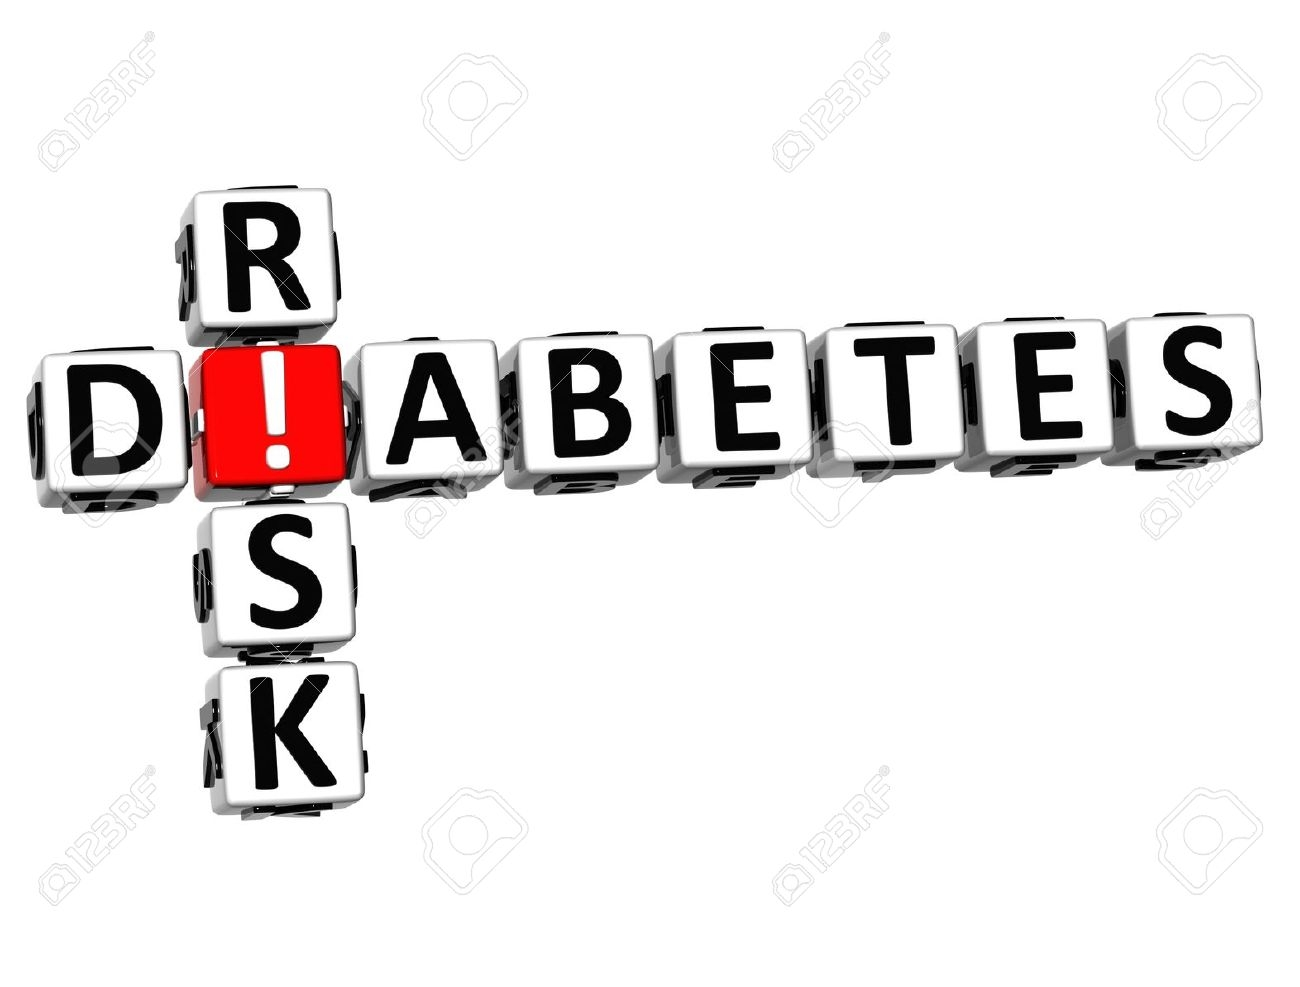 Diabetics at risk of postoperative cognitive issues